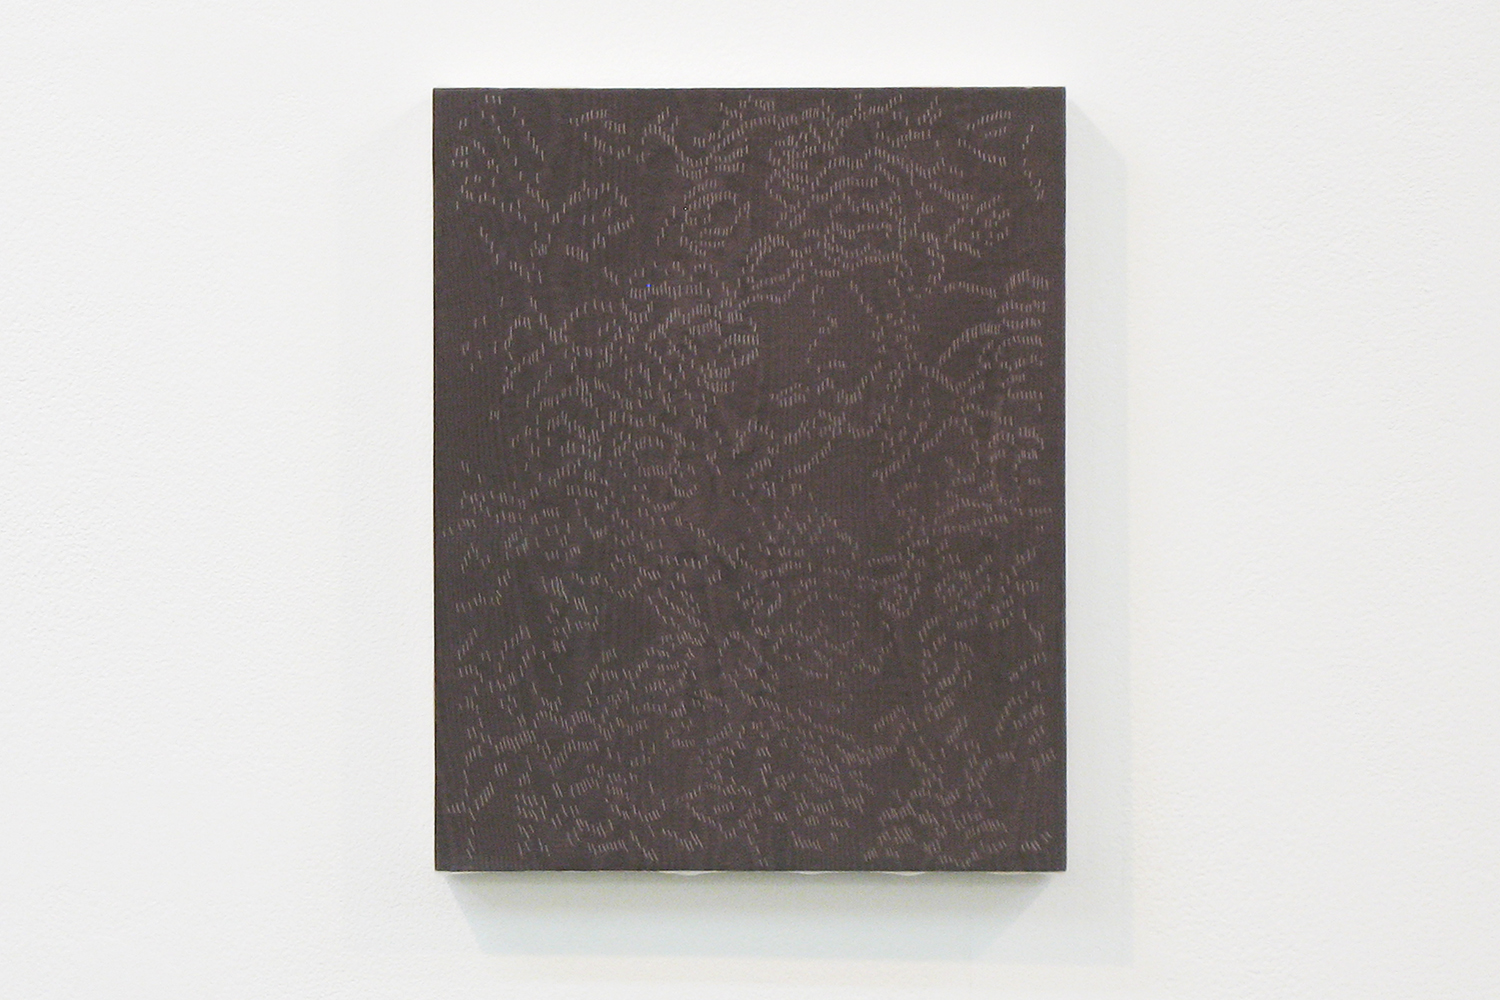 lace DB|panel, stainless steel sheet, glass organdy, acrylic|273  x 220 mm|2009